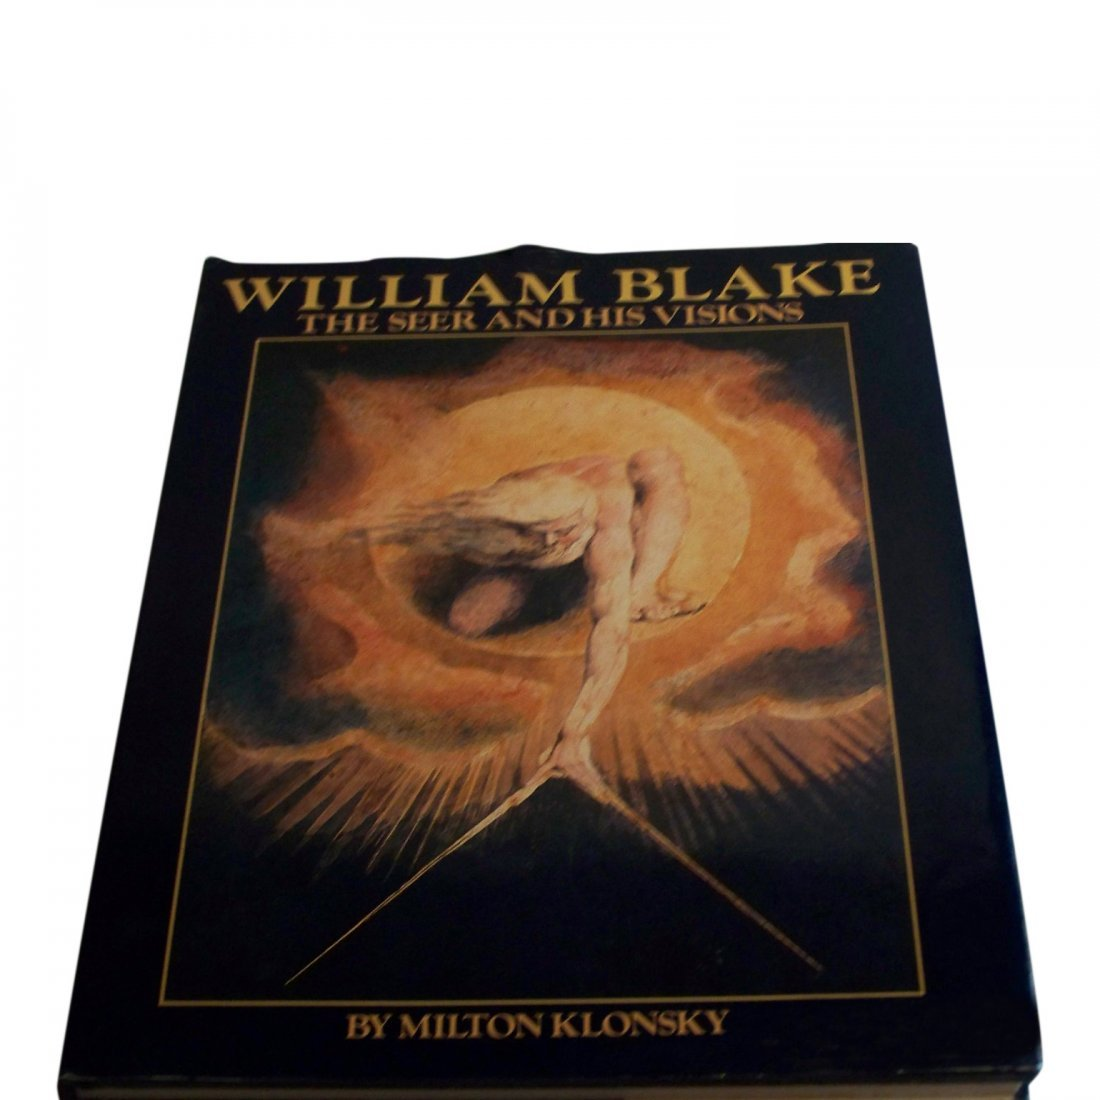 William Blake, the Seer and His Visions